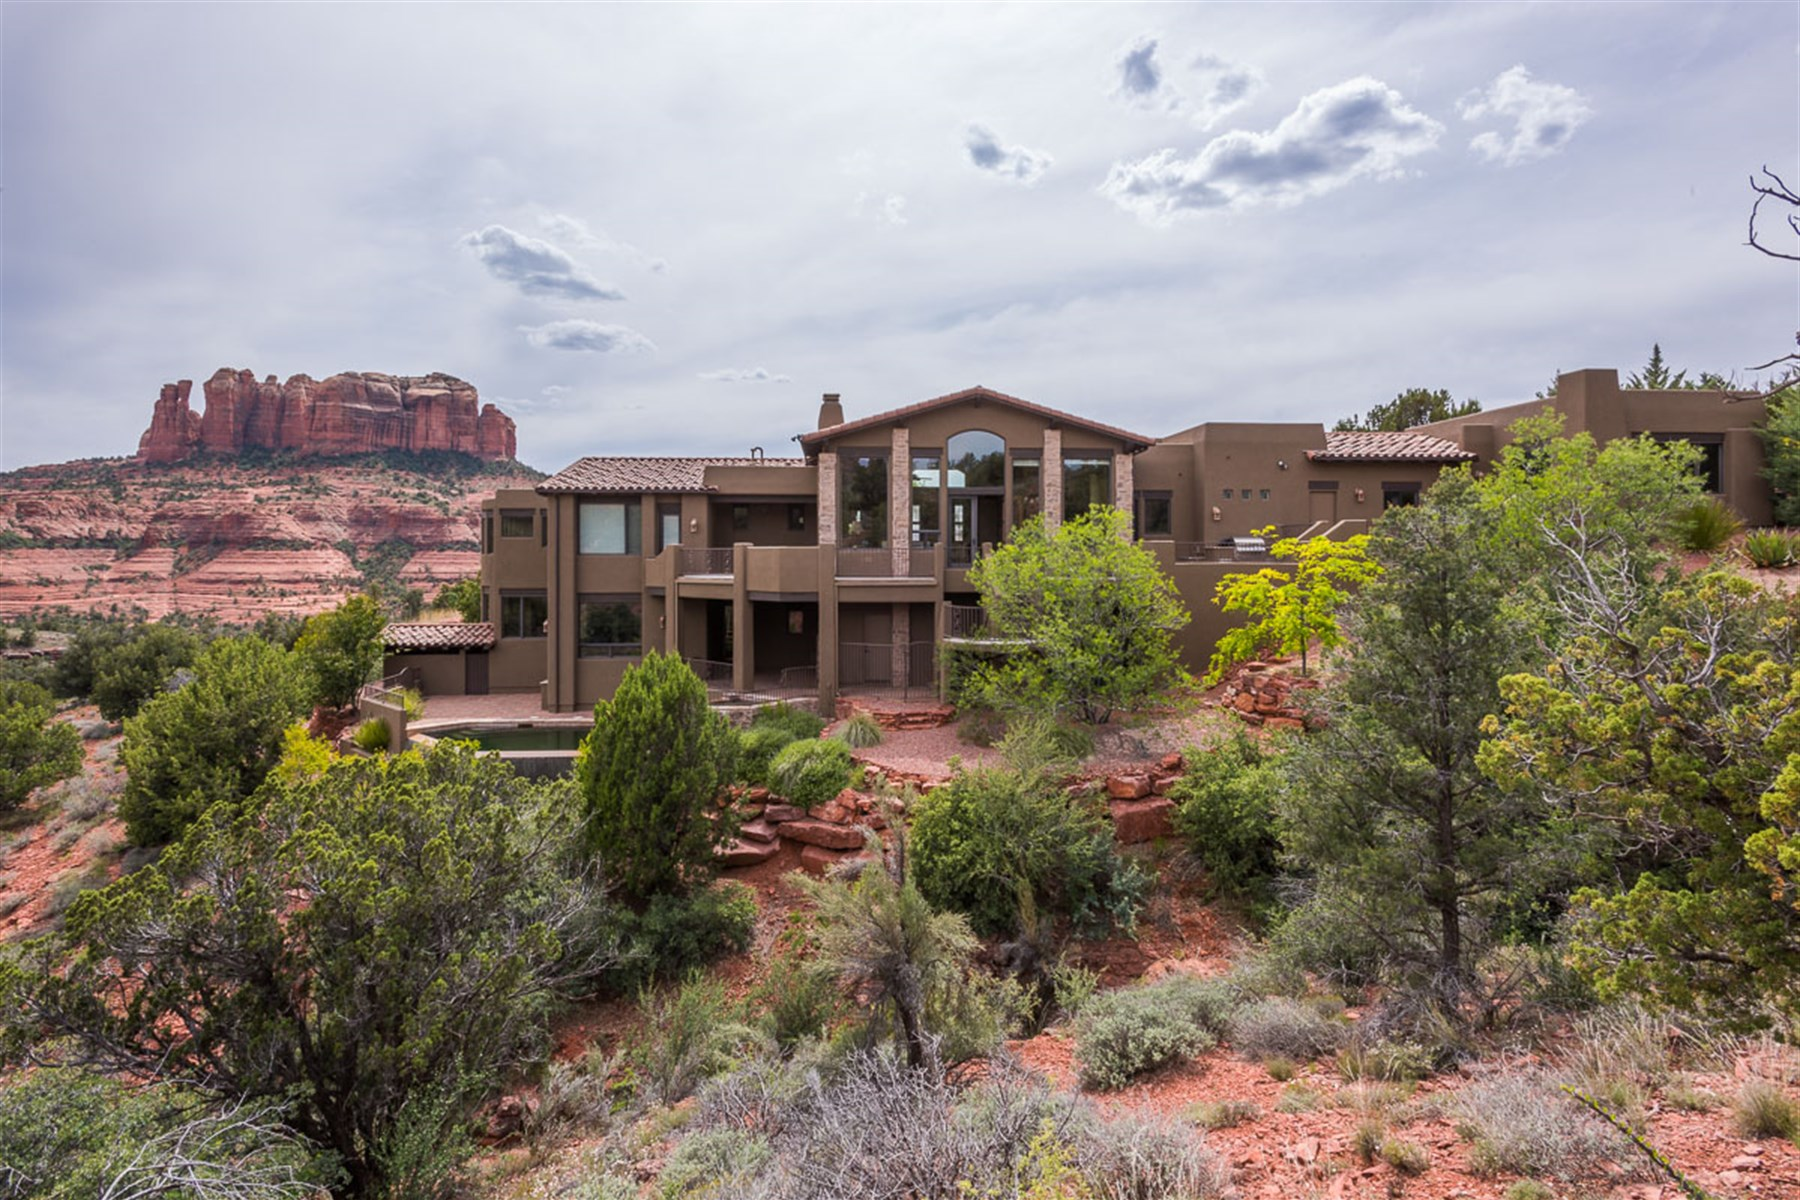 一戸建て のために 売買 アット Sante Fe luxury home sits elevated in this magical environment of Back O' Beyond 15 ROSEMARY CT Sedona, アリゾナ 86336 アメリカ合衆国